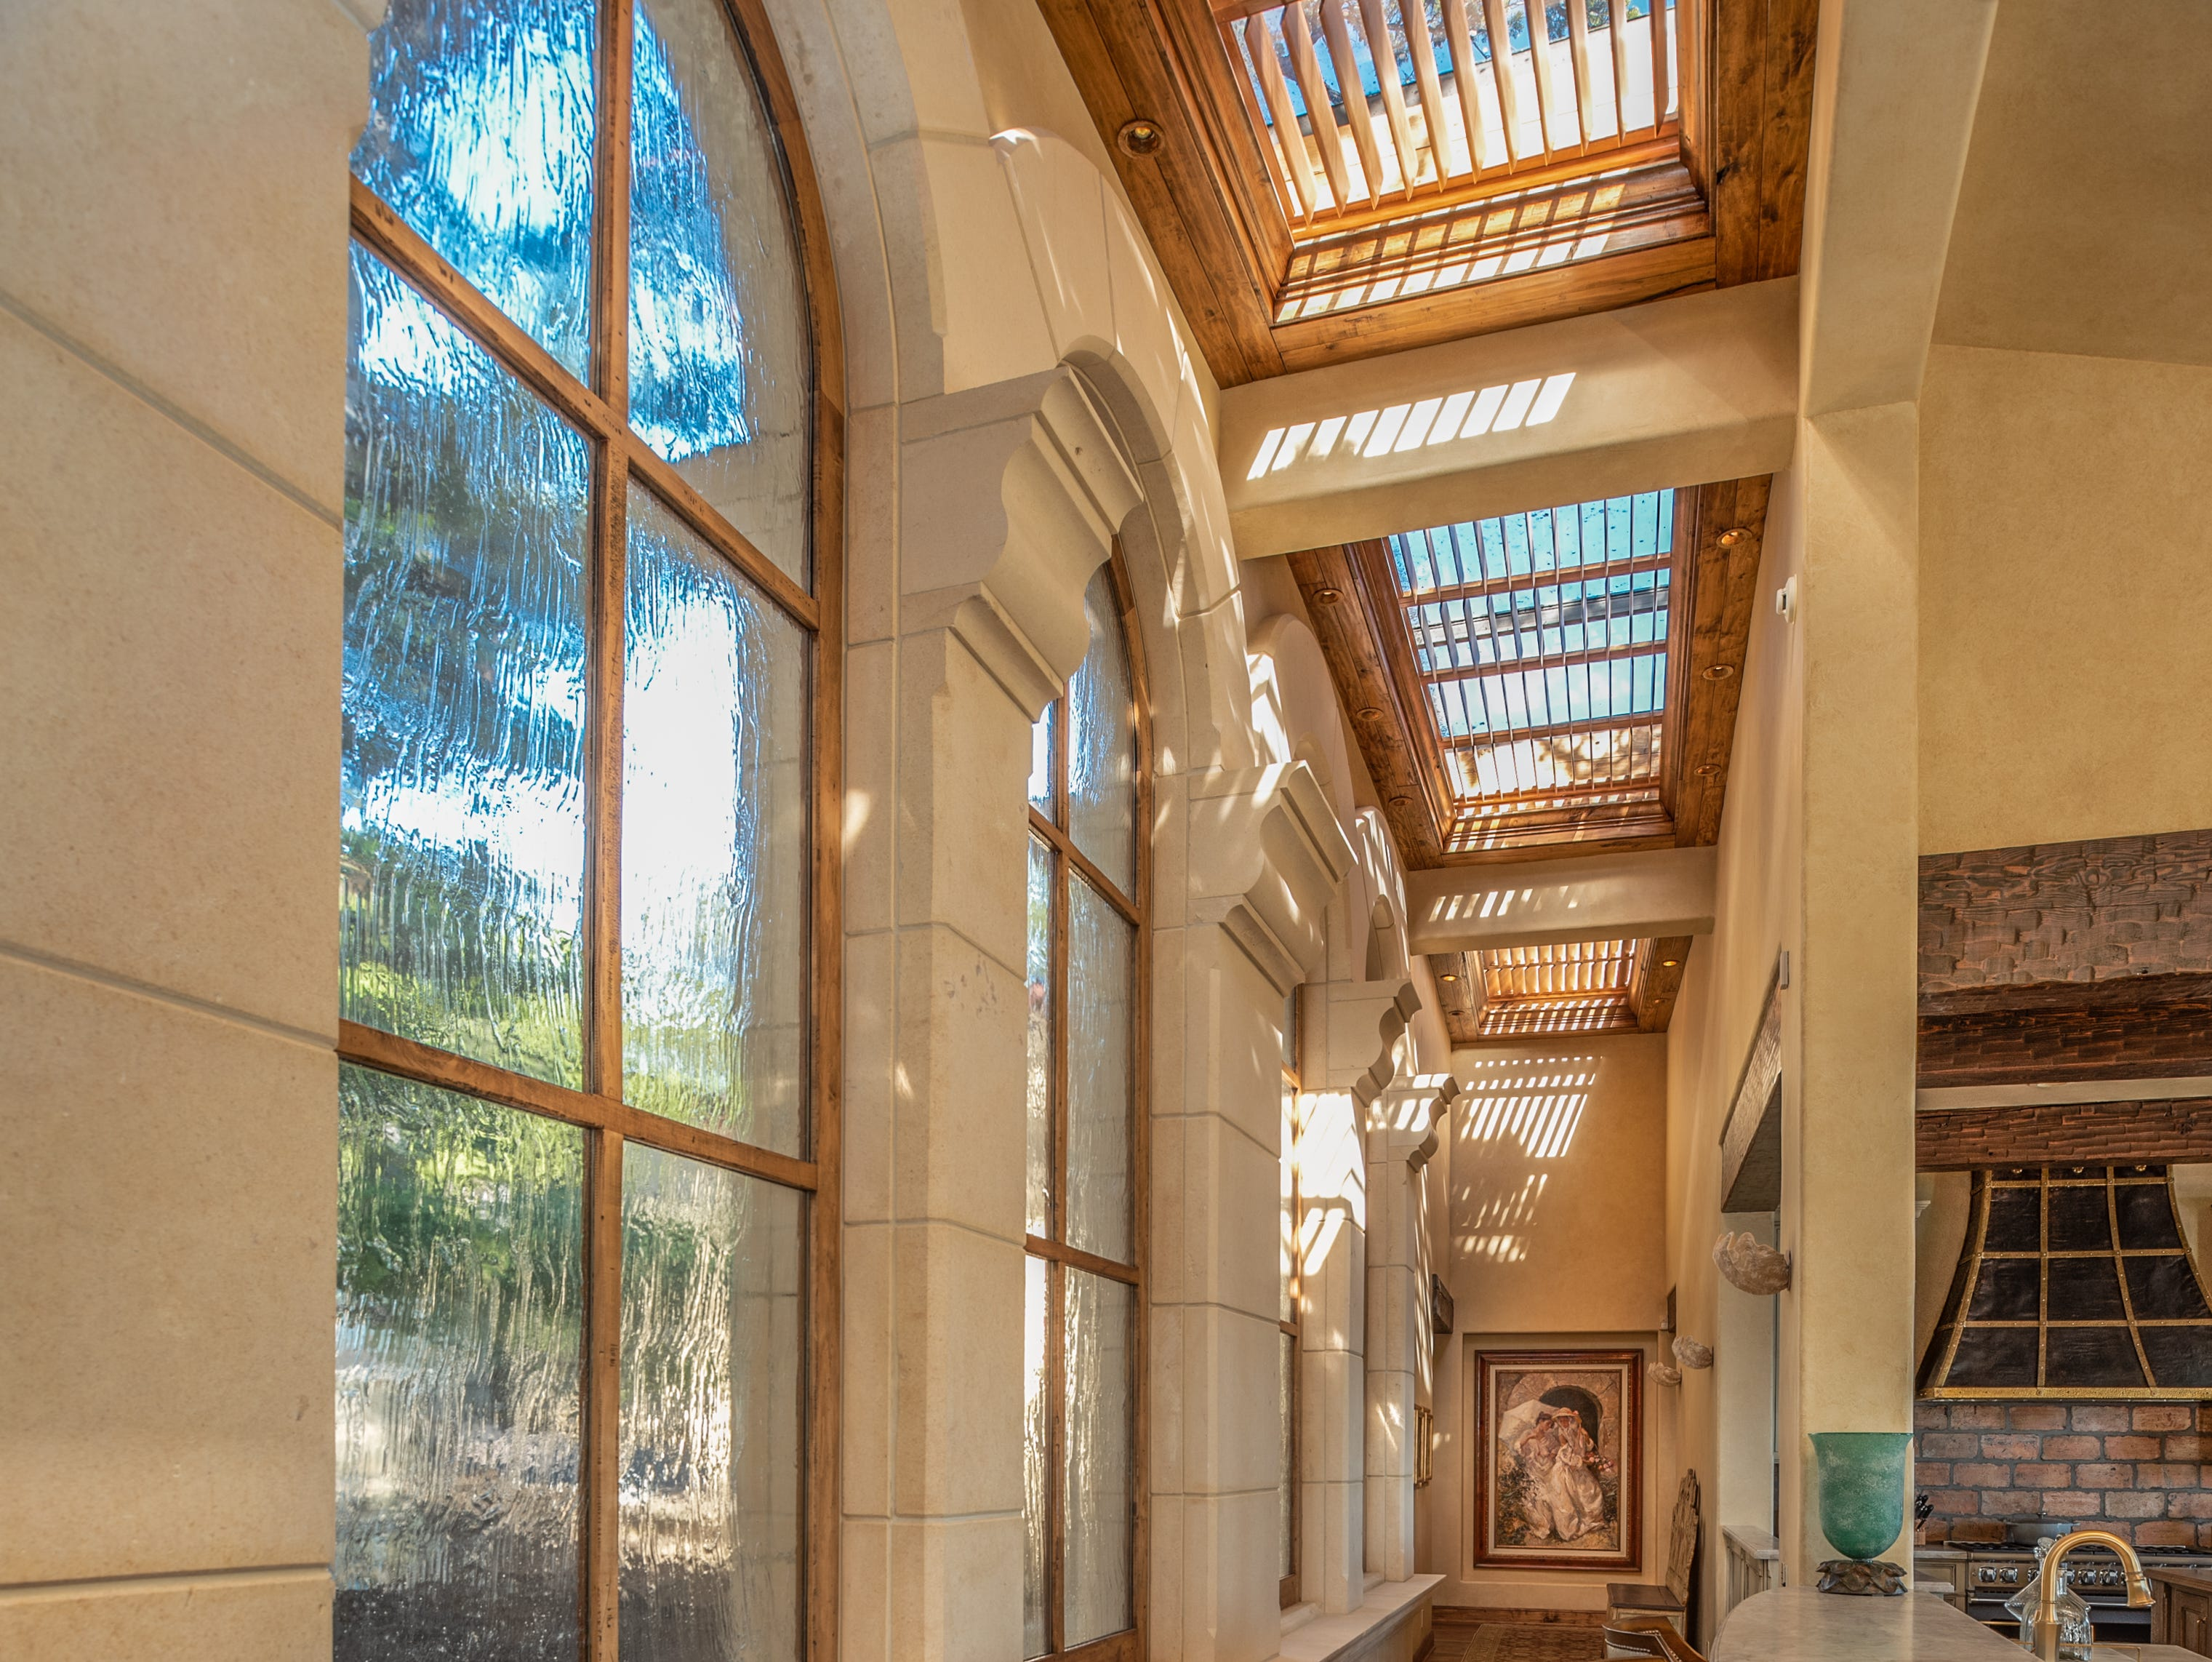 The skylights and arched windows bring the sunlight in.